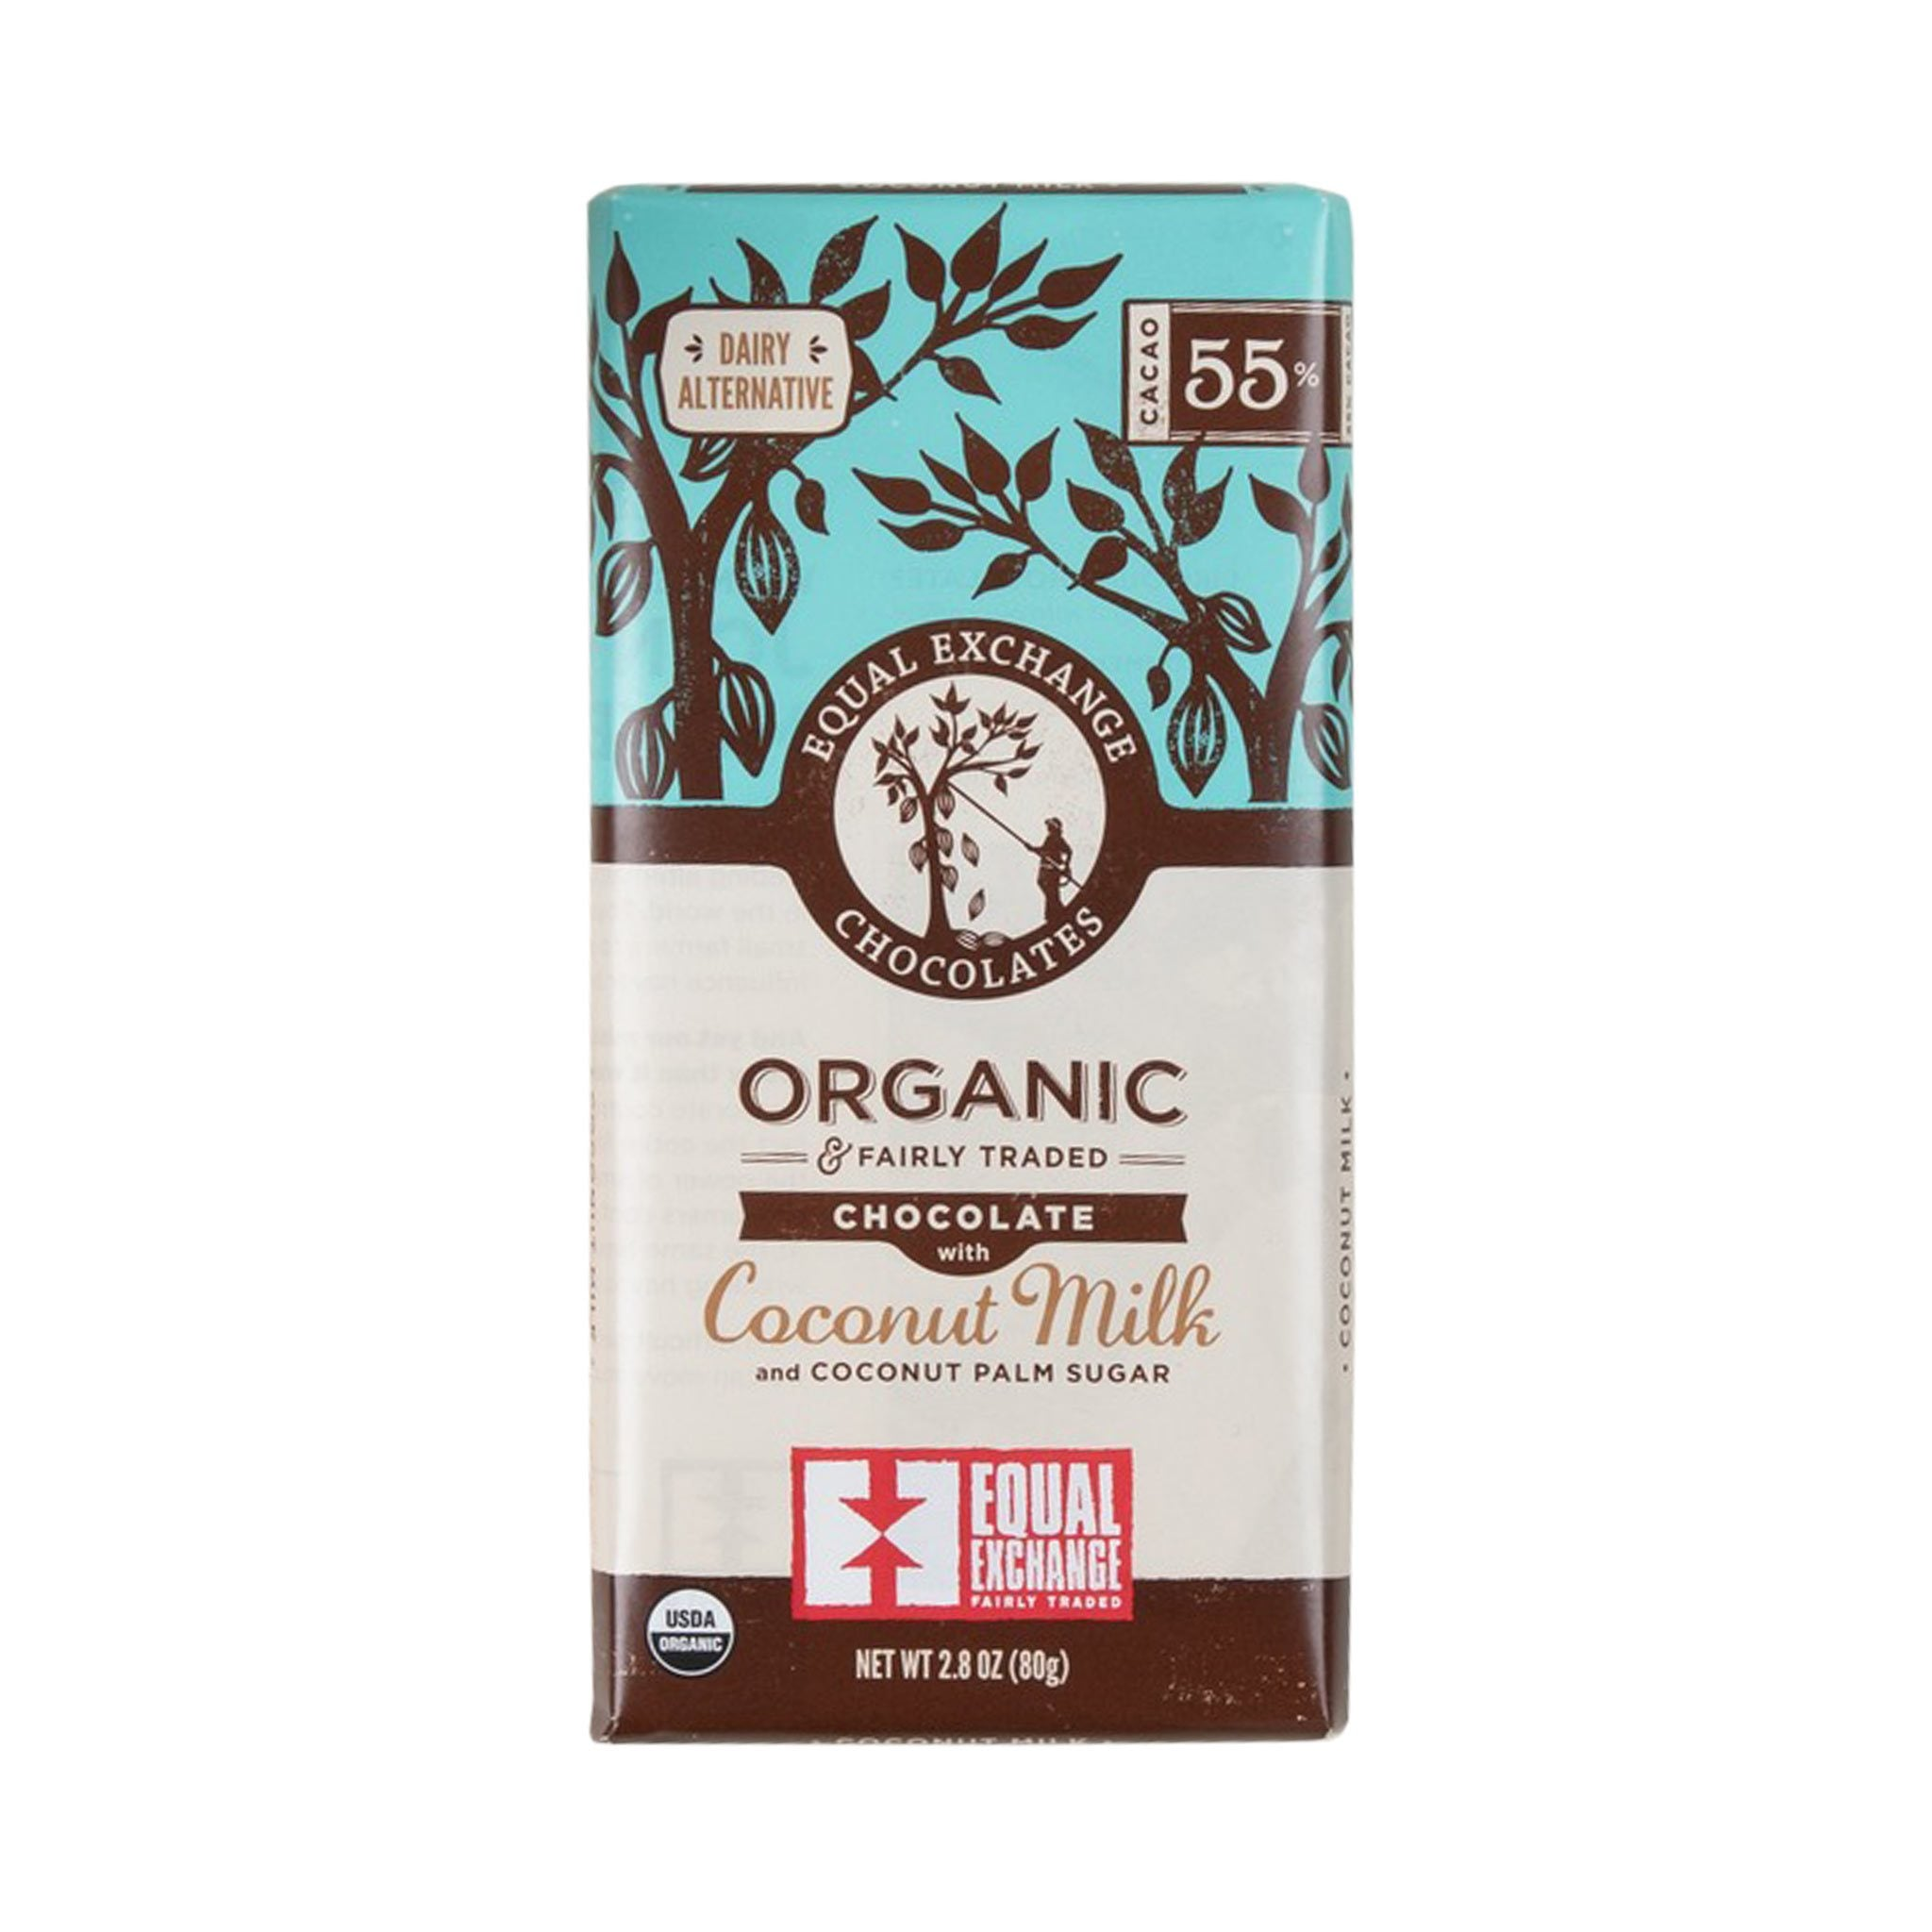 Organic Chocolate with Coconut Milk (55% CACAO)